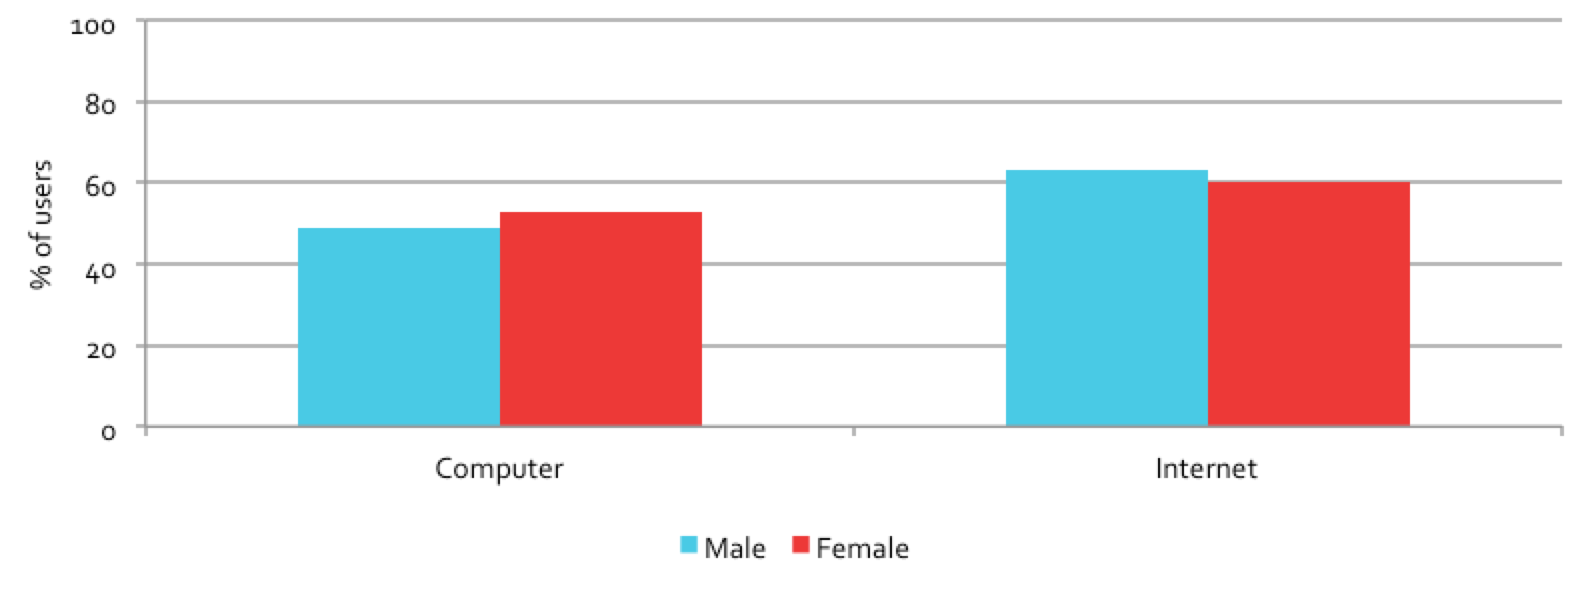 Figure 4.4: First use of computers and internet at a public access venue, by gender